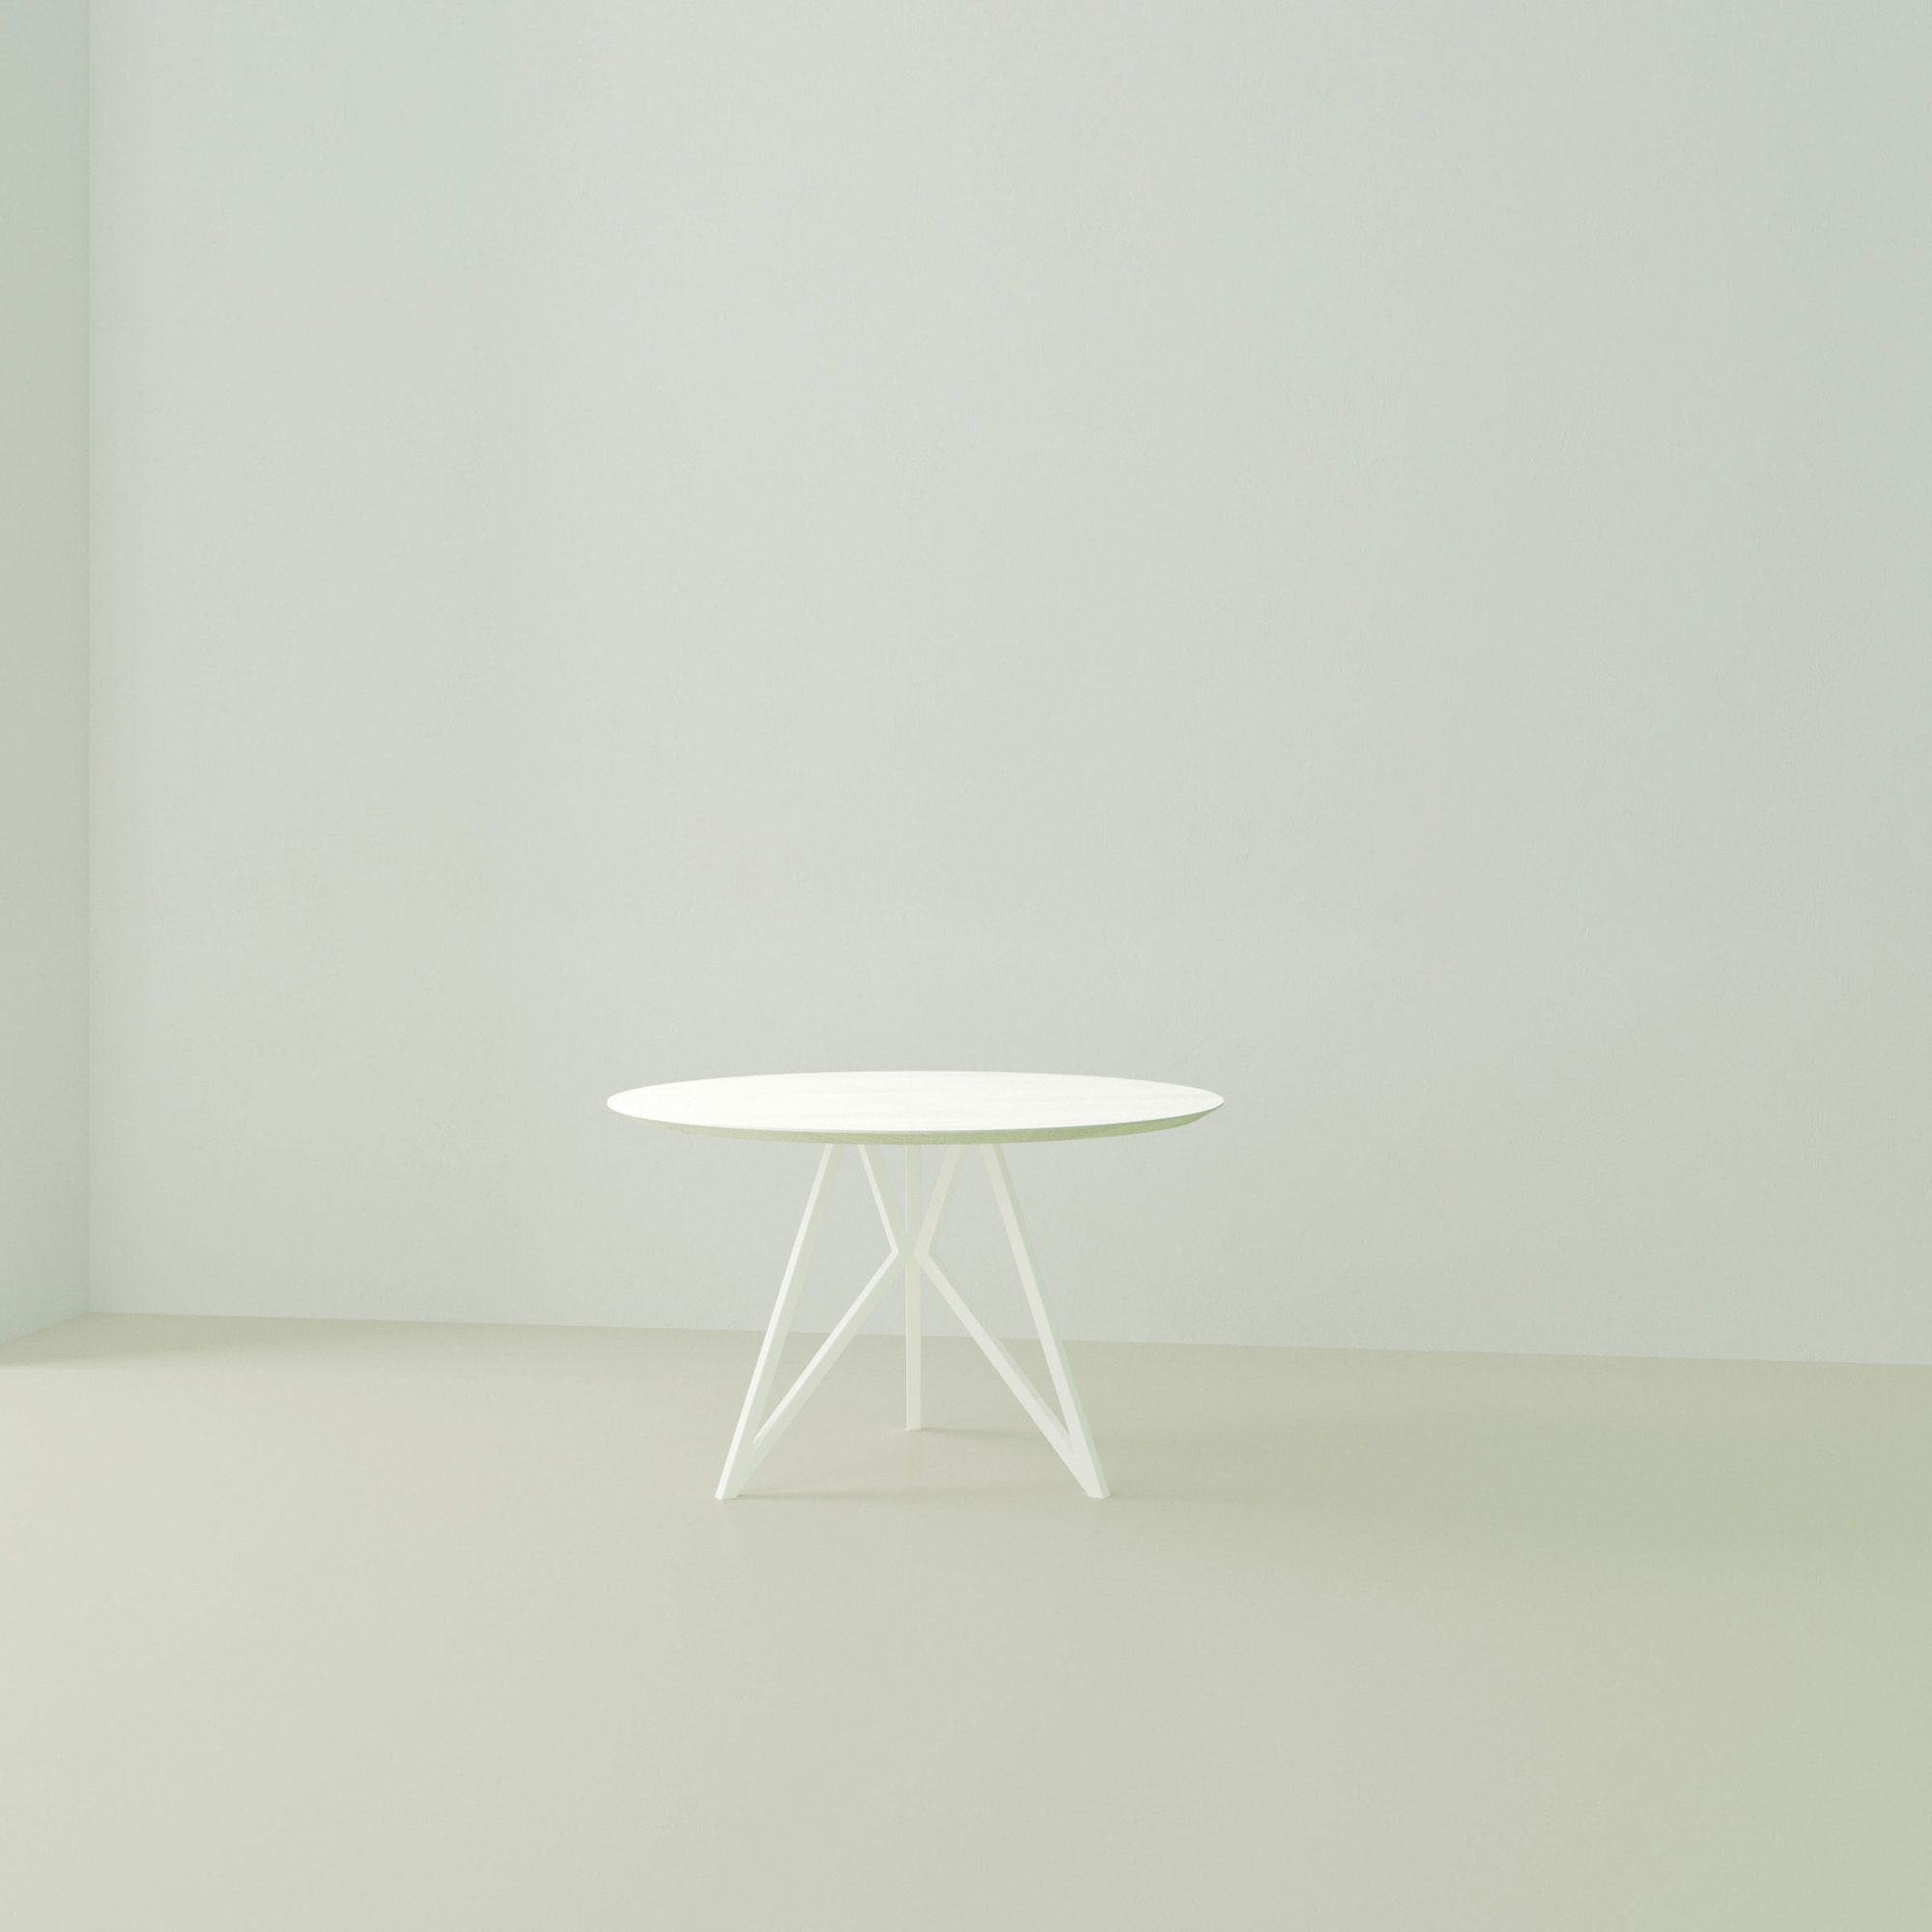 Ronde design tafel op maat | Butterfly Tripod Steel white powdercoating | Oak white lacquer | Studio HENK | Listing_image